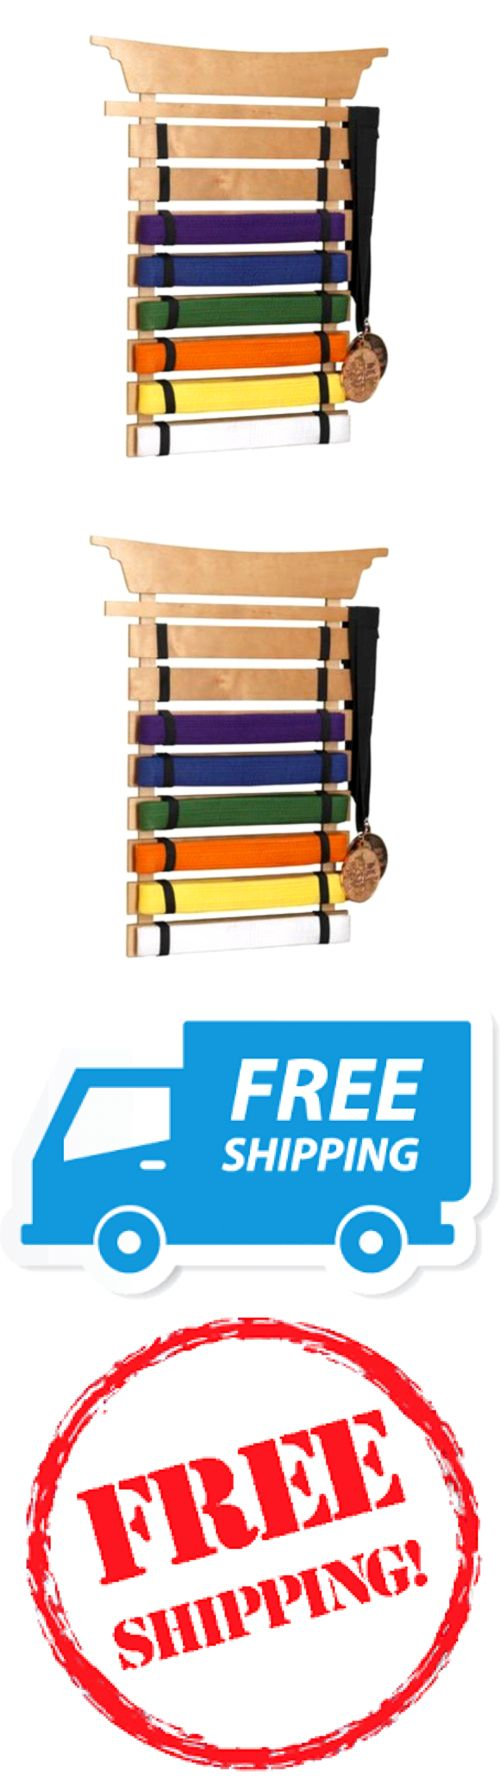 Other Combat Sport Supplies 16044: No.1 Martial Arts Belts Holder Rack Wall Display Karate Kung Fu Tae Kwon Do Nib -> BUY IT NOW ONLY: $30.64 on eBay!